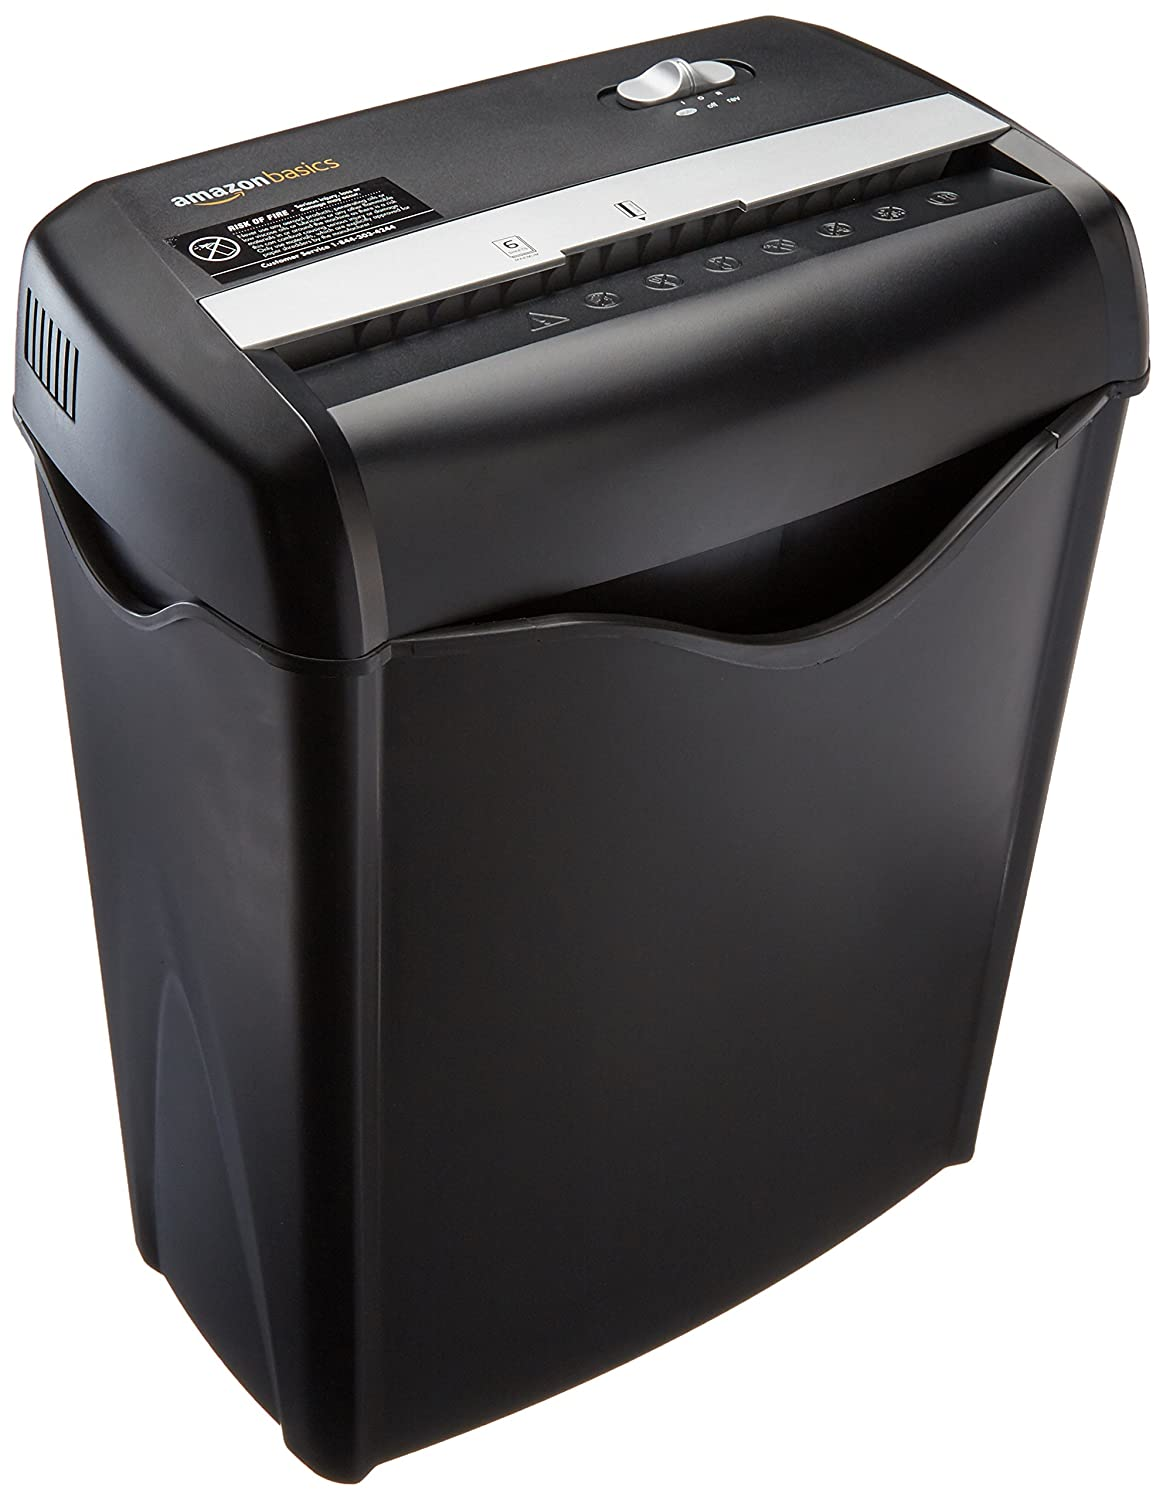 AmazonBasics 6-Sheet Cross-Cut Paper and Credit Card Shredder AS662C